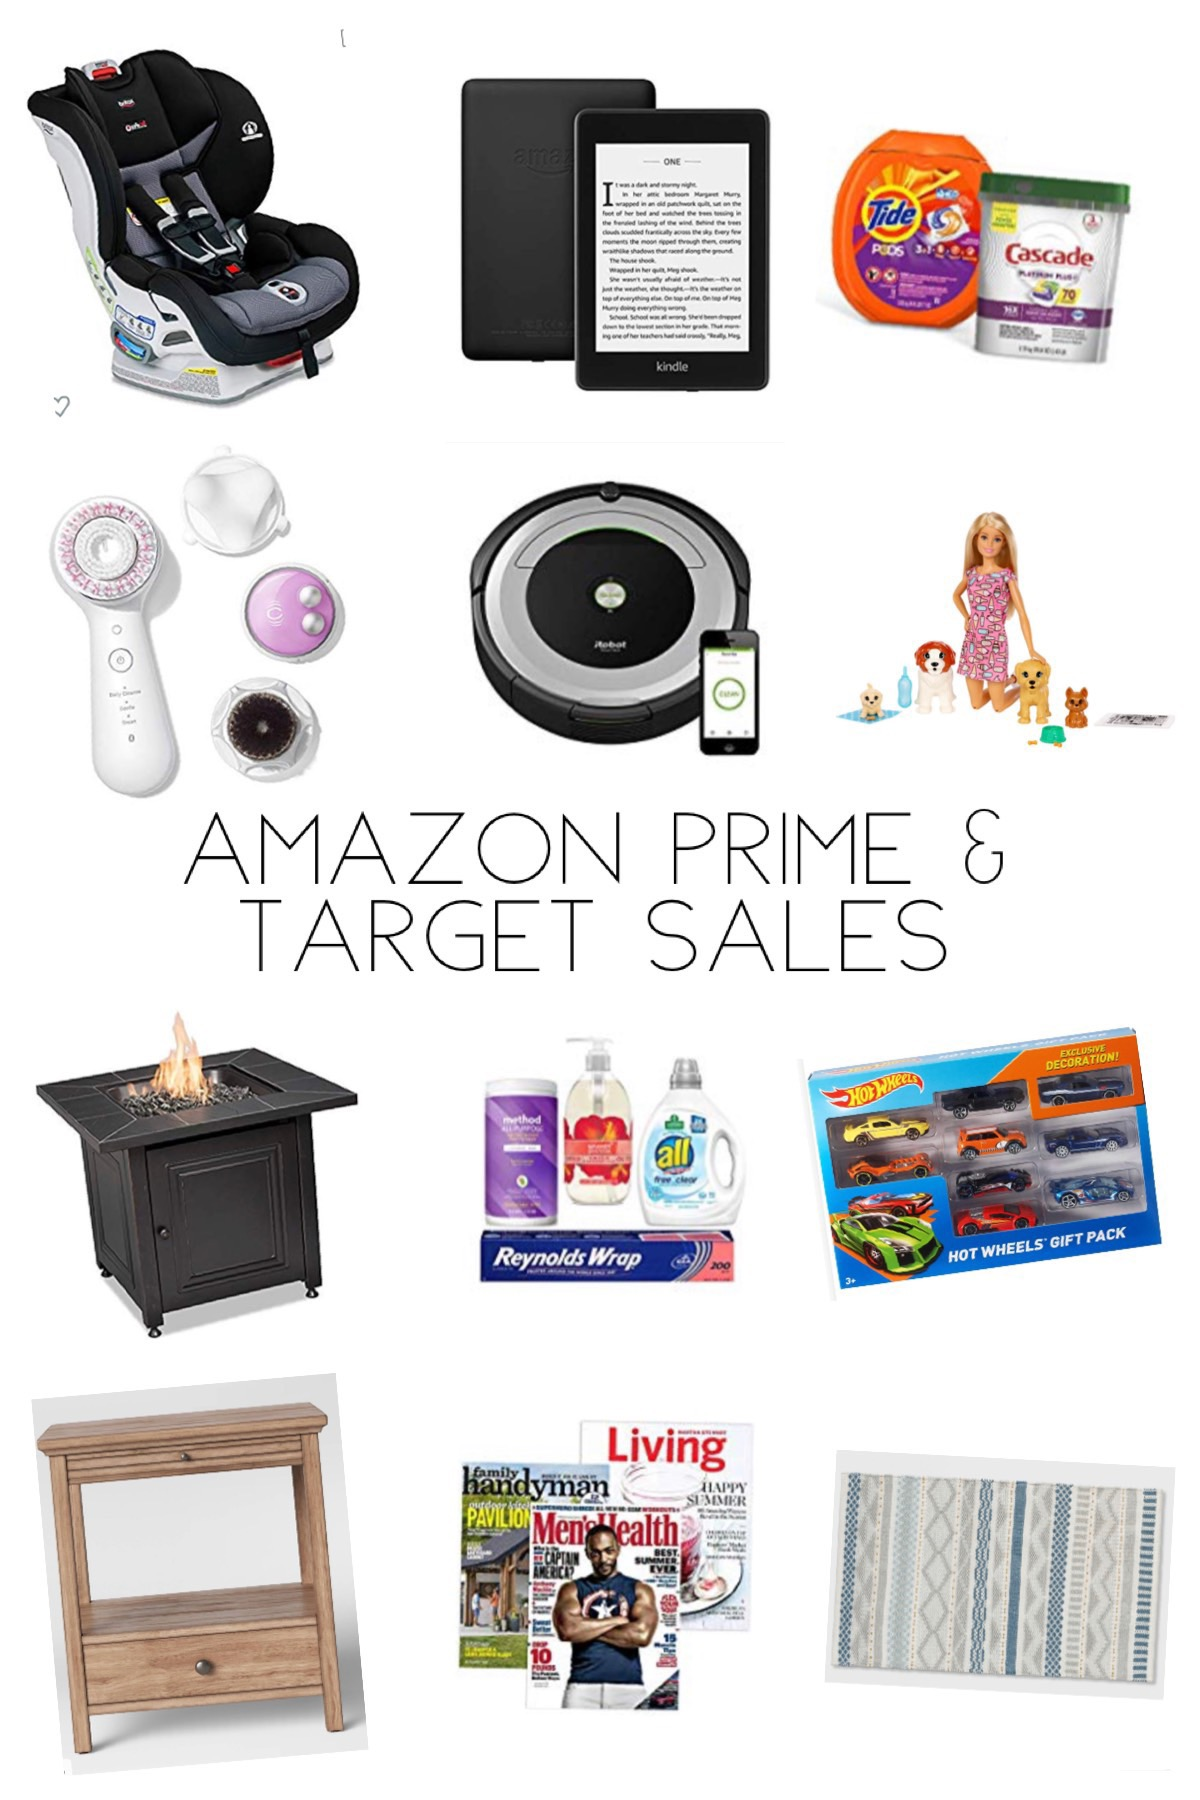 Best Amazon Prime & Target deals from Newport Lane Blog!